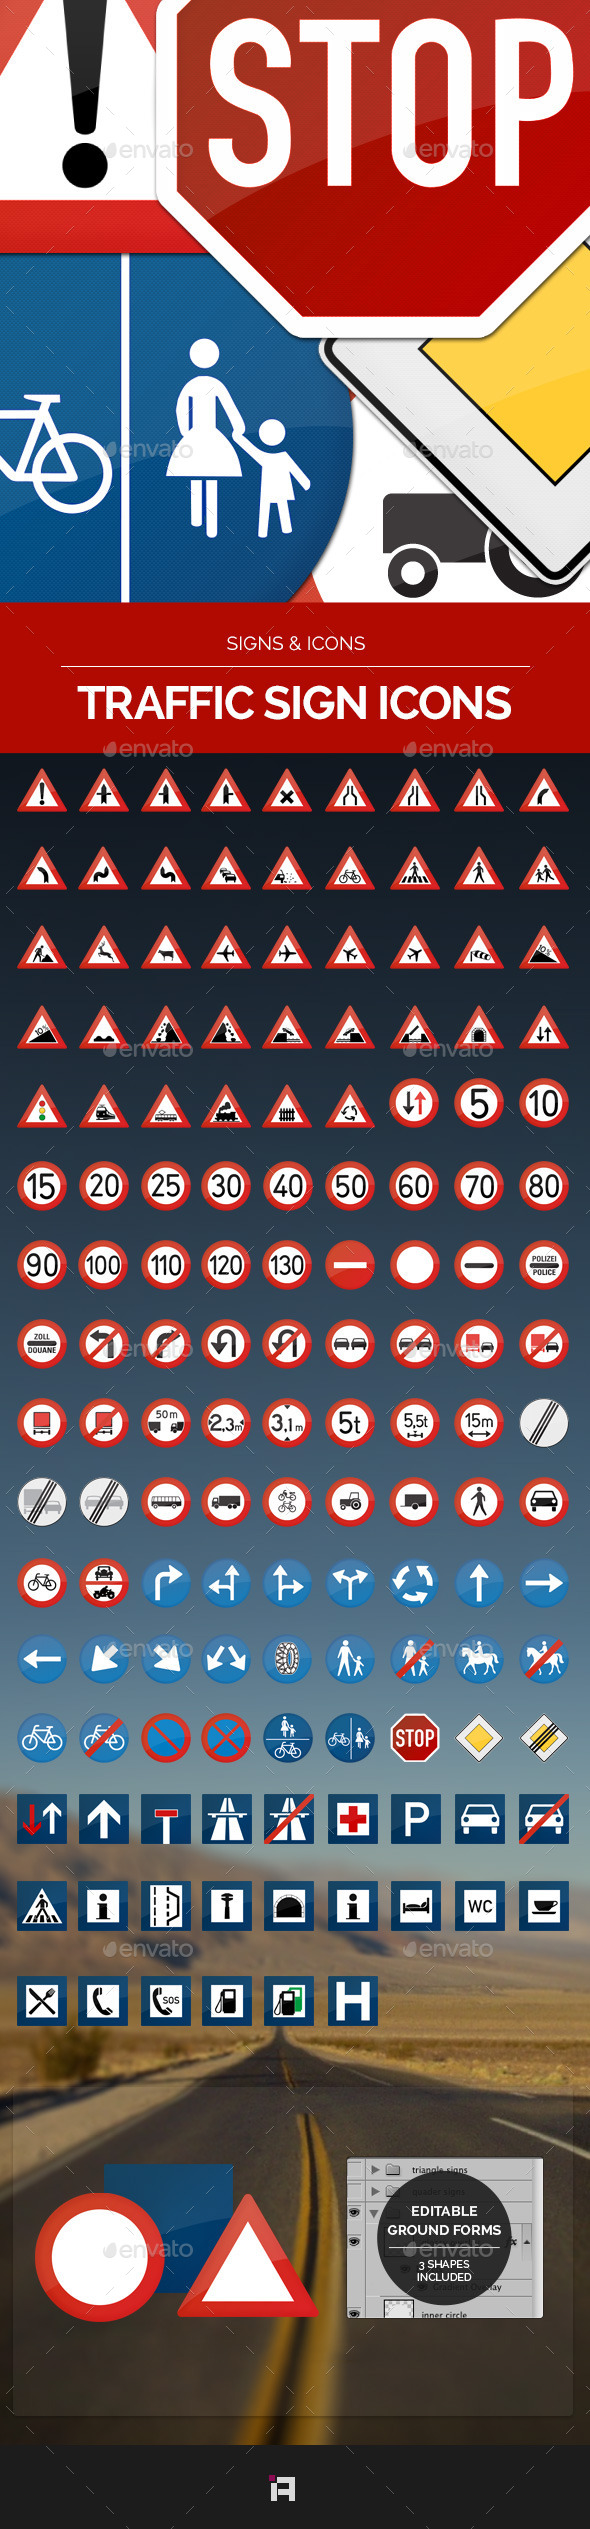 Traffic Sign Icons - Vol.1 - Man-made objects Objects